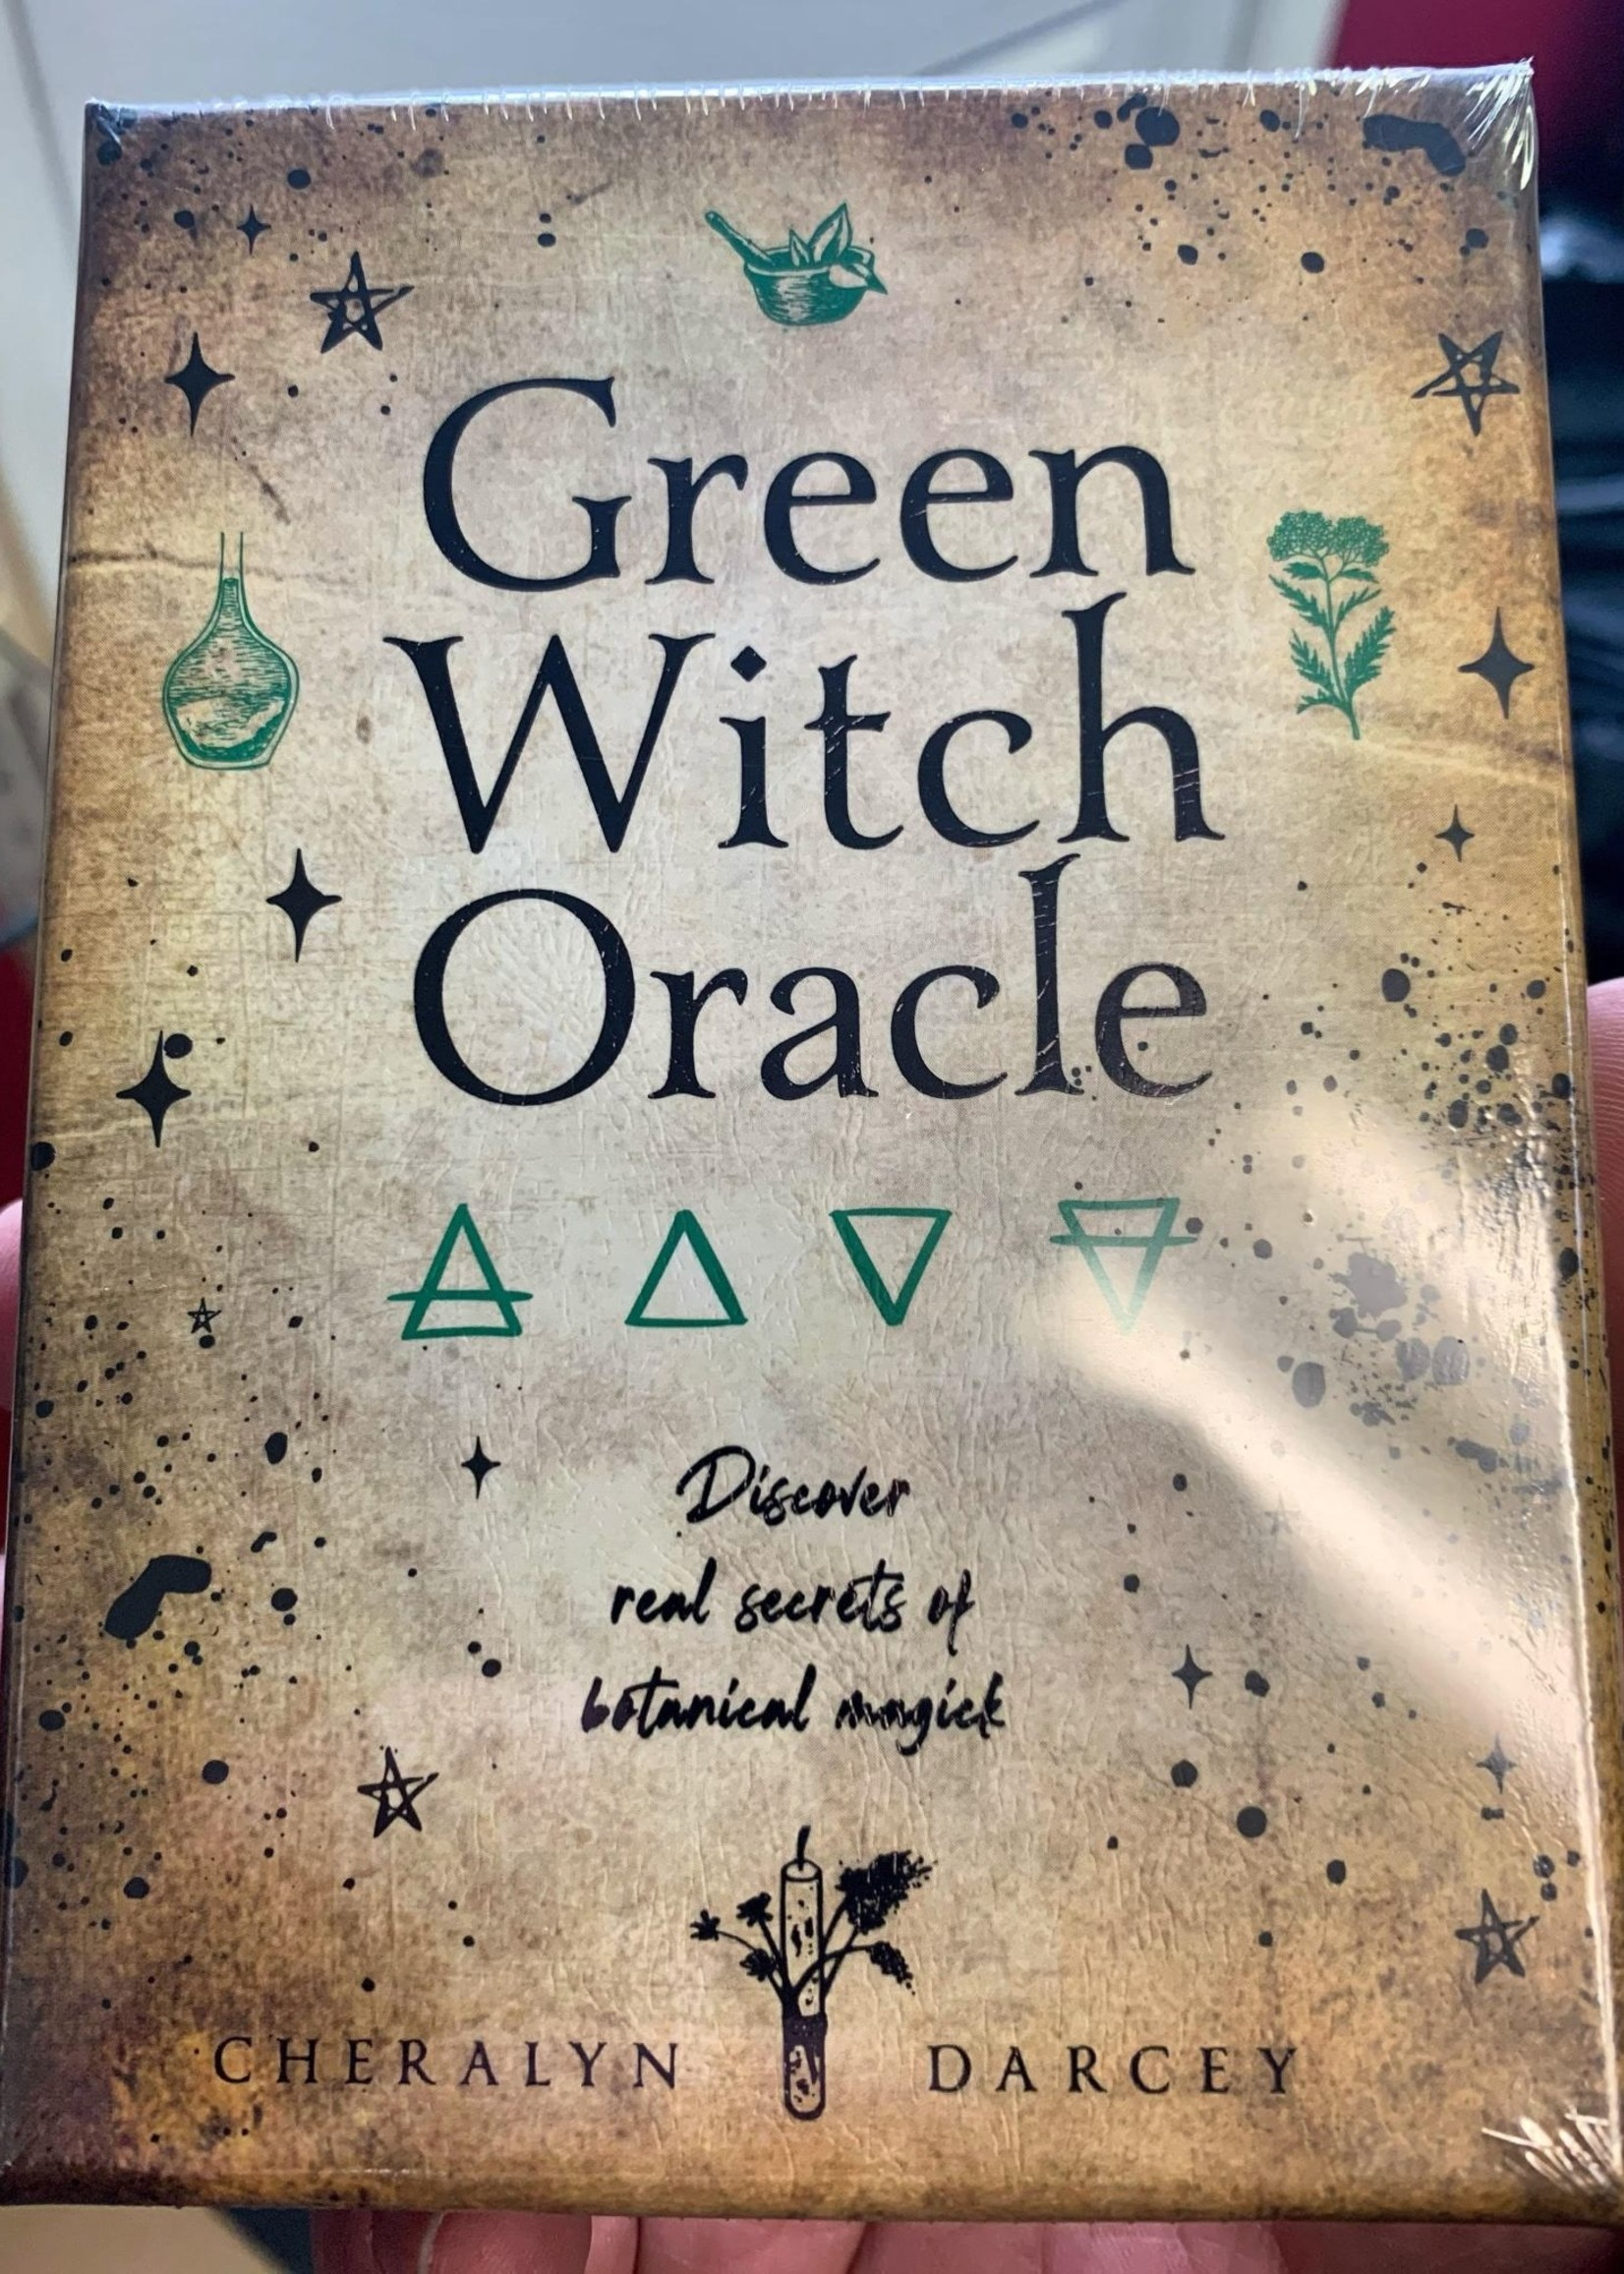 Green Witch Oracle Cards Discover Real Secrets of Botanical Magic Cheralyn Darcey